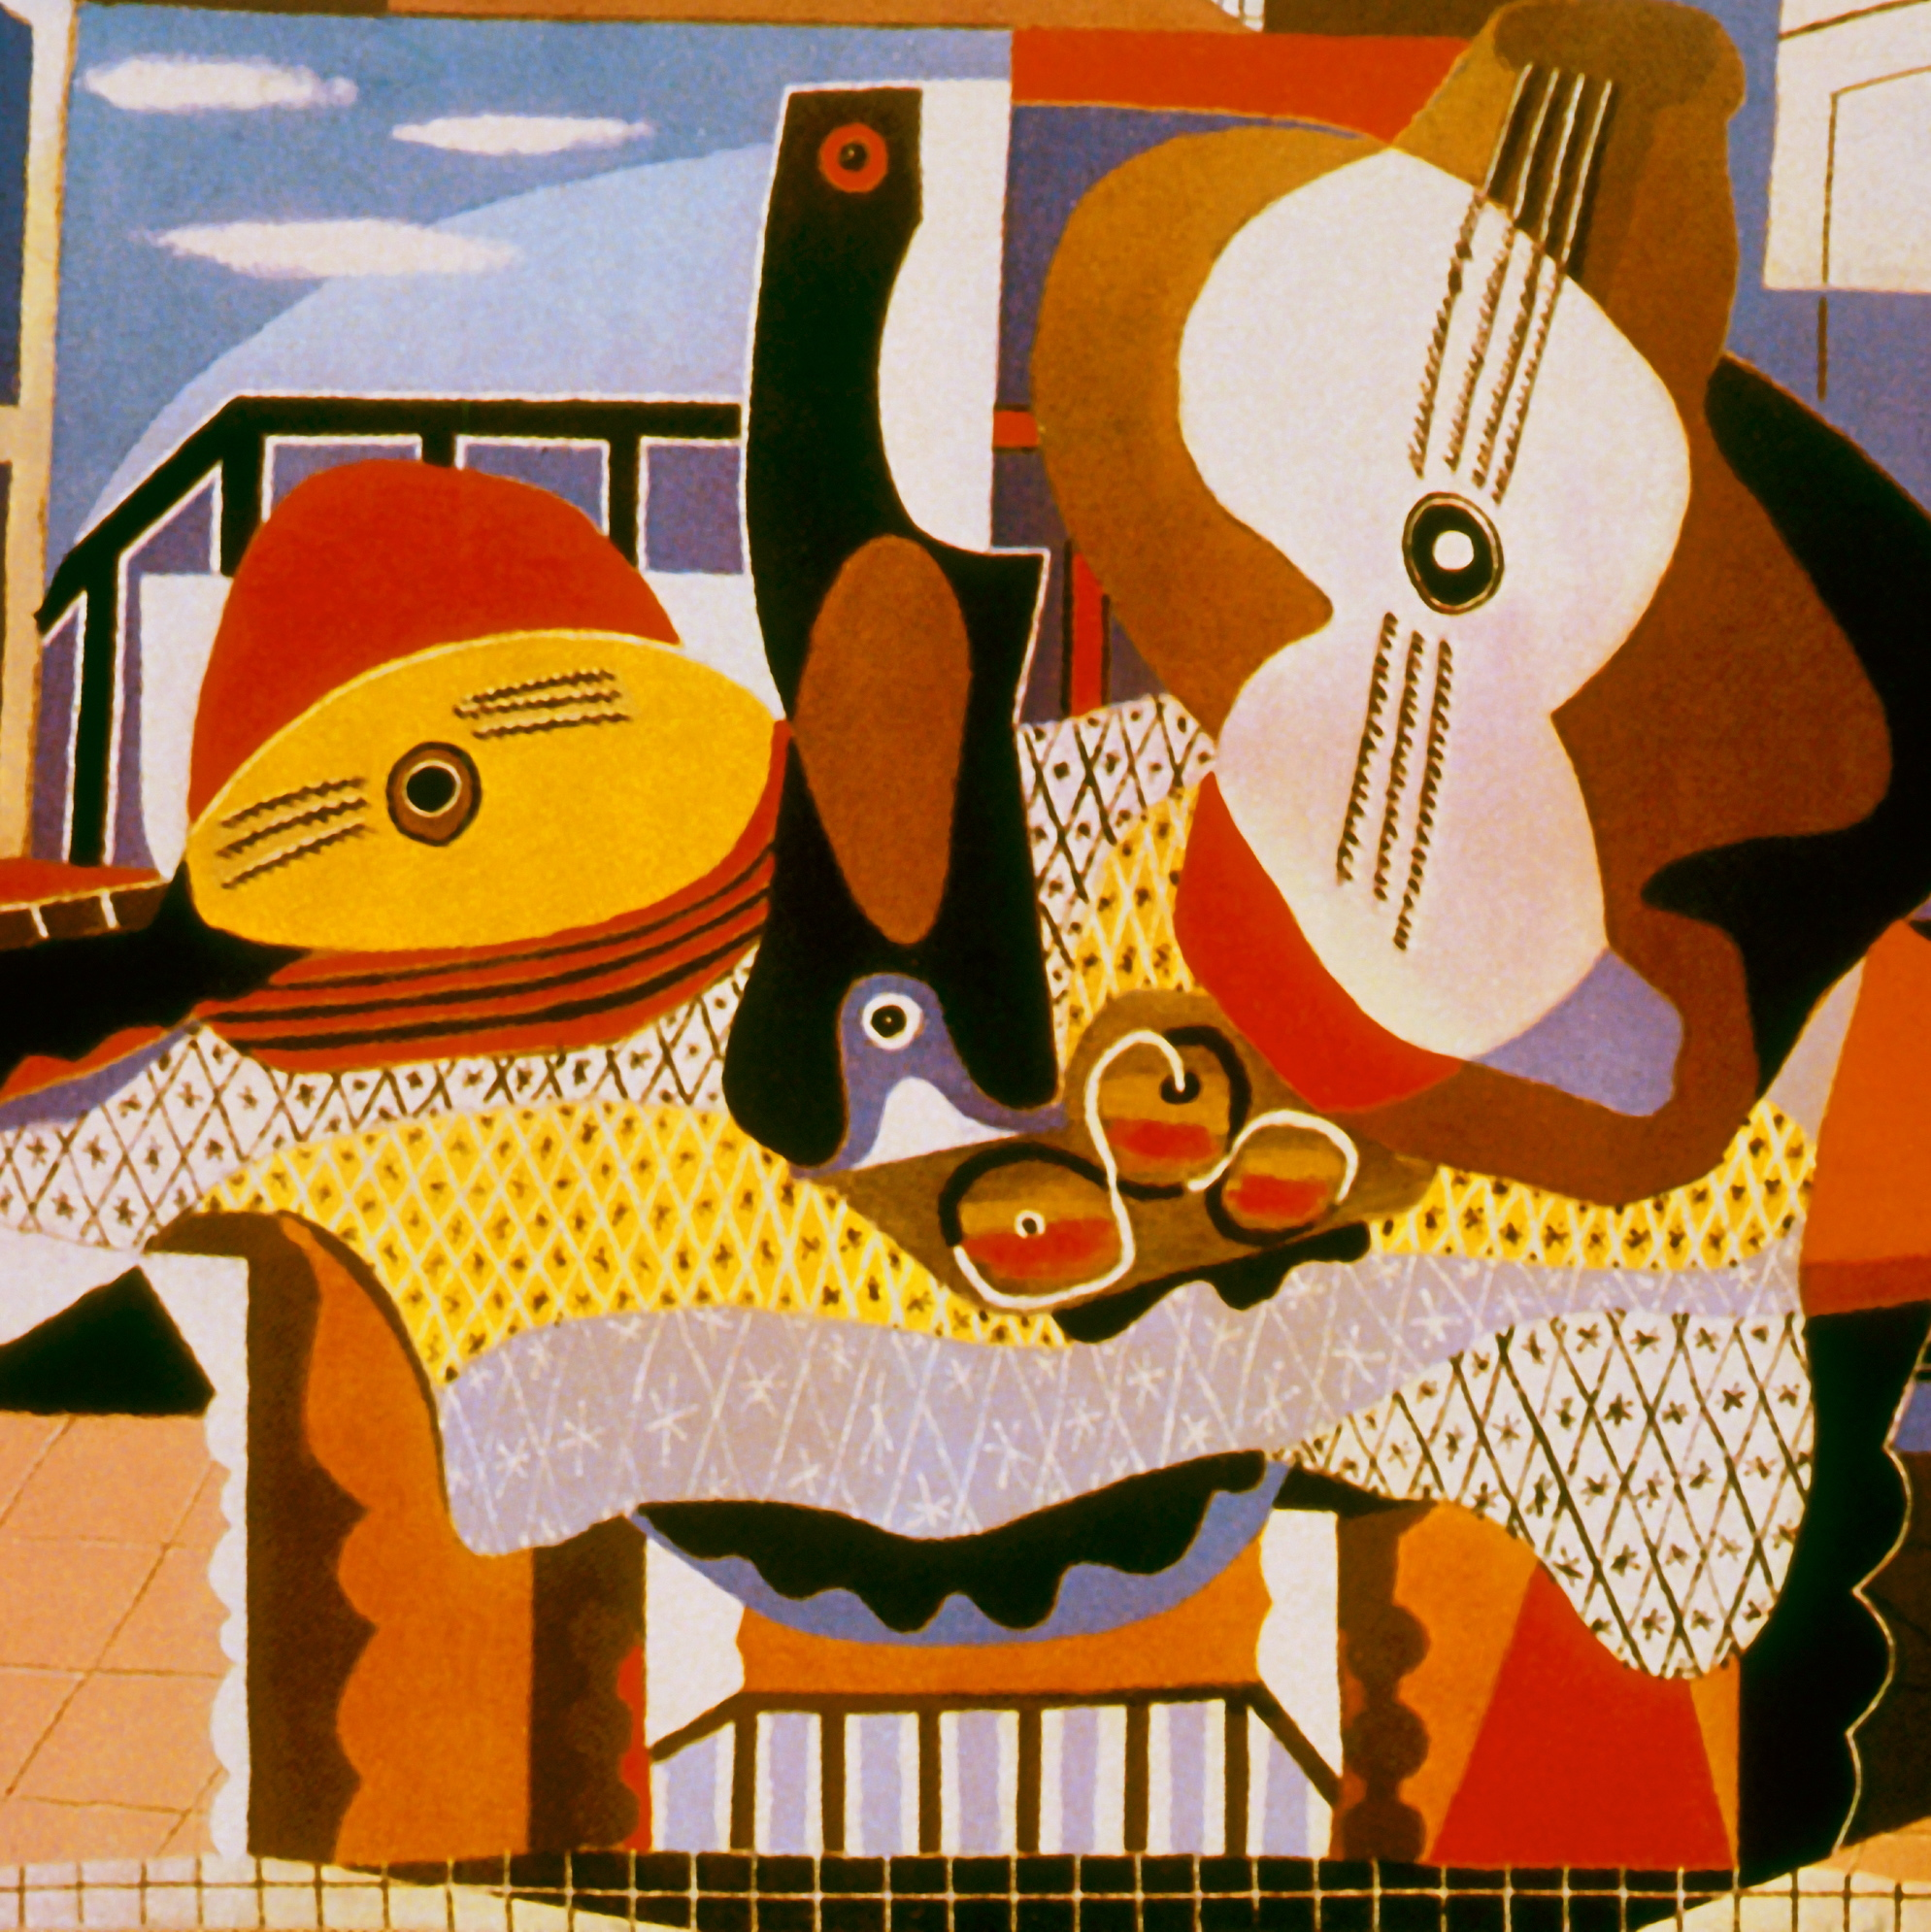 Caption: Mandolin & Guitar, Credit: by Pablo Picasso